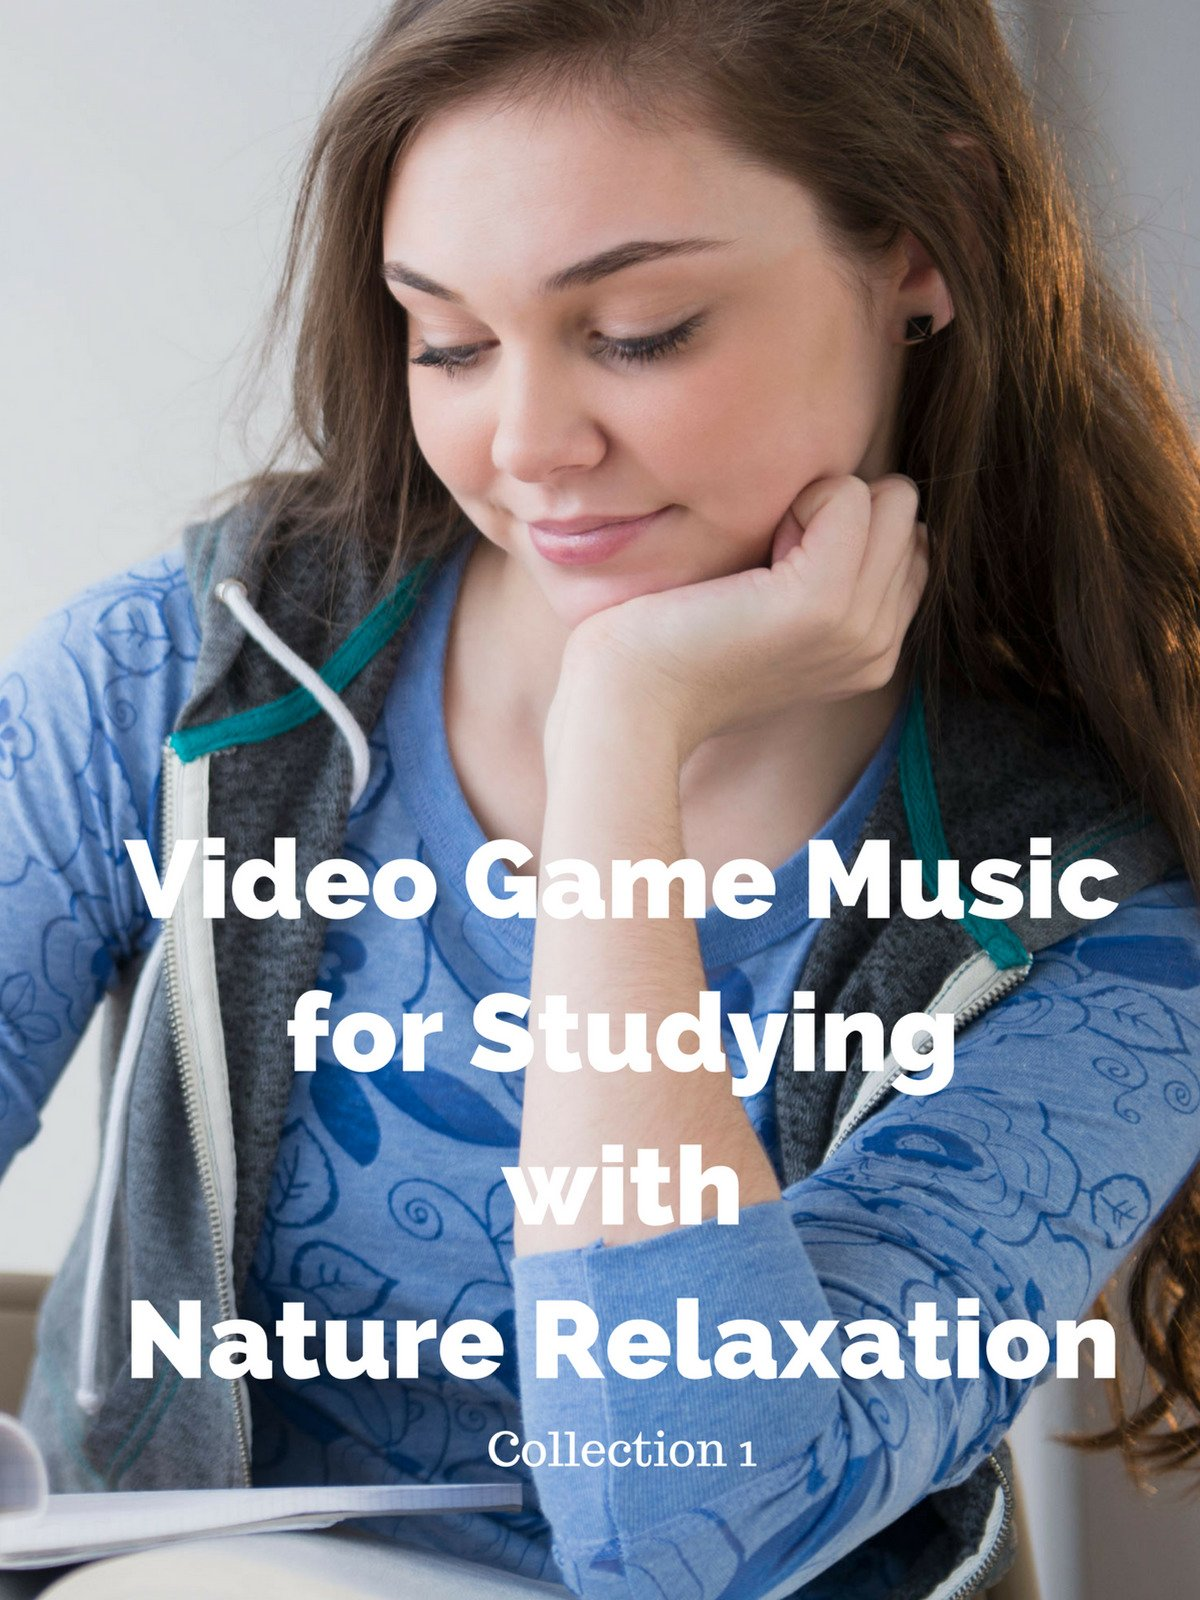 Video Game Music for Studying